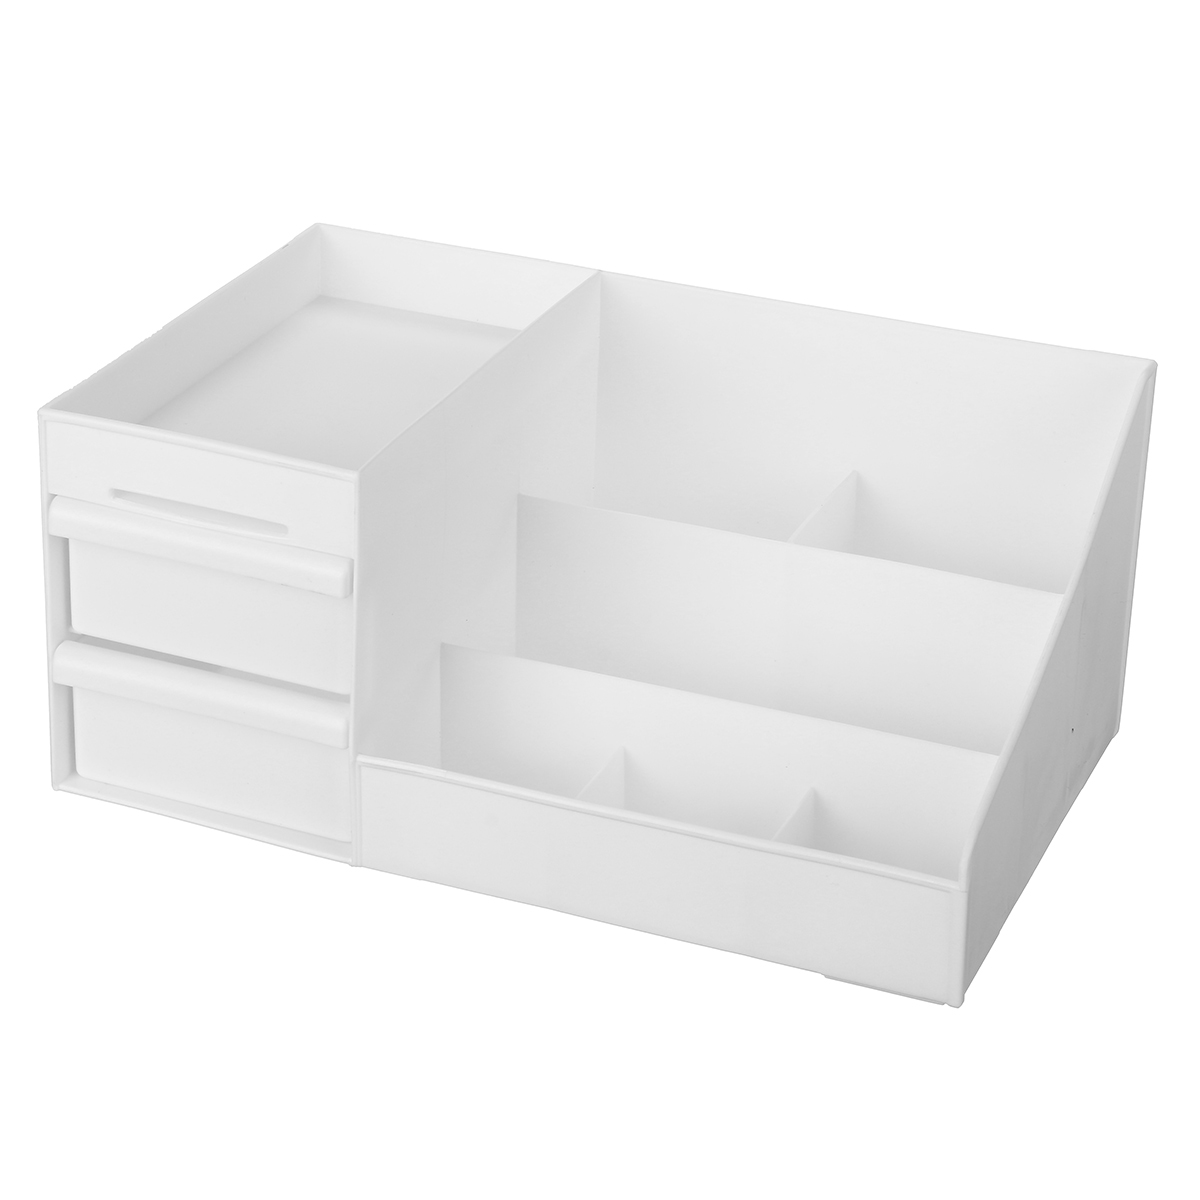 Plastic Cosmetic Makeup Storage Box Organizer Case Holder Jewelry with Drawer